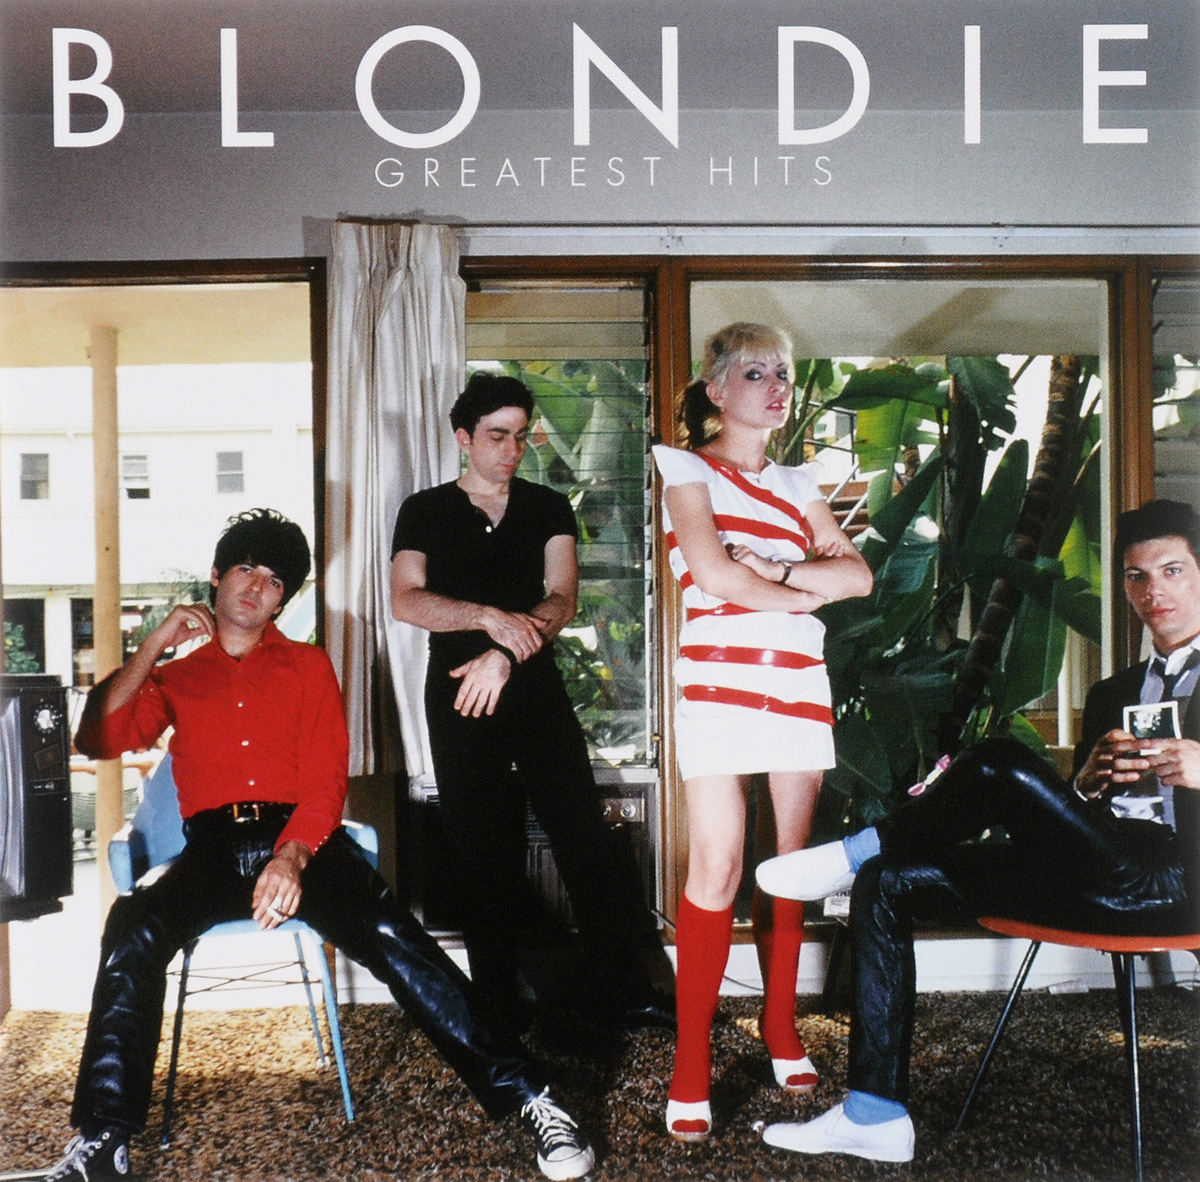 Blondie Blondie. Greatest Hits (CD + DVD) ftw glass9